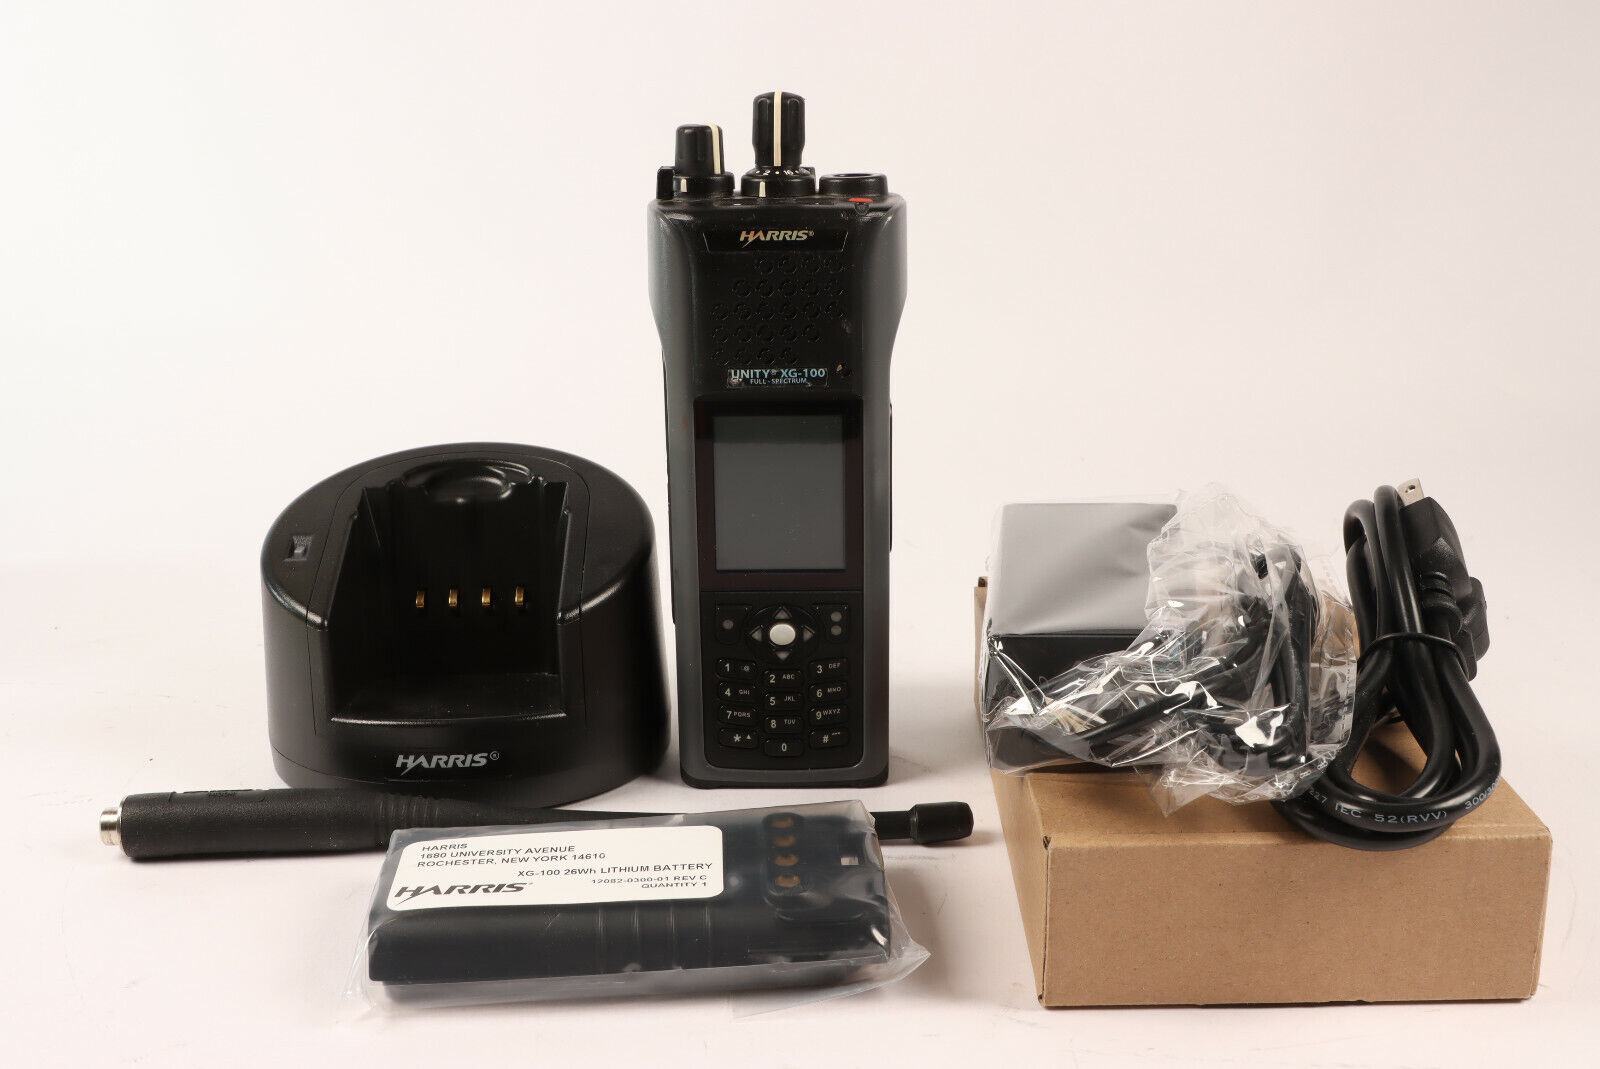 Harris XG-100 Unity Radio P25 Phase II AES/DES 136-865 MHz XG-100P *New Battery. Buy it now for 1350.00